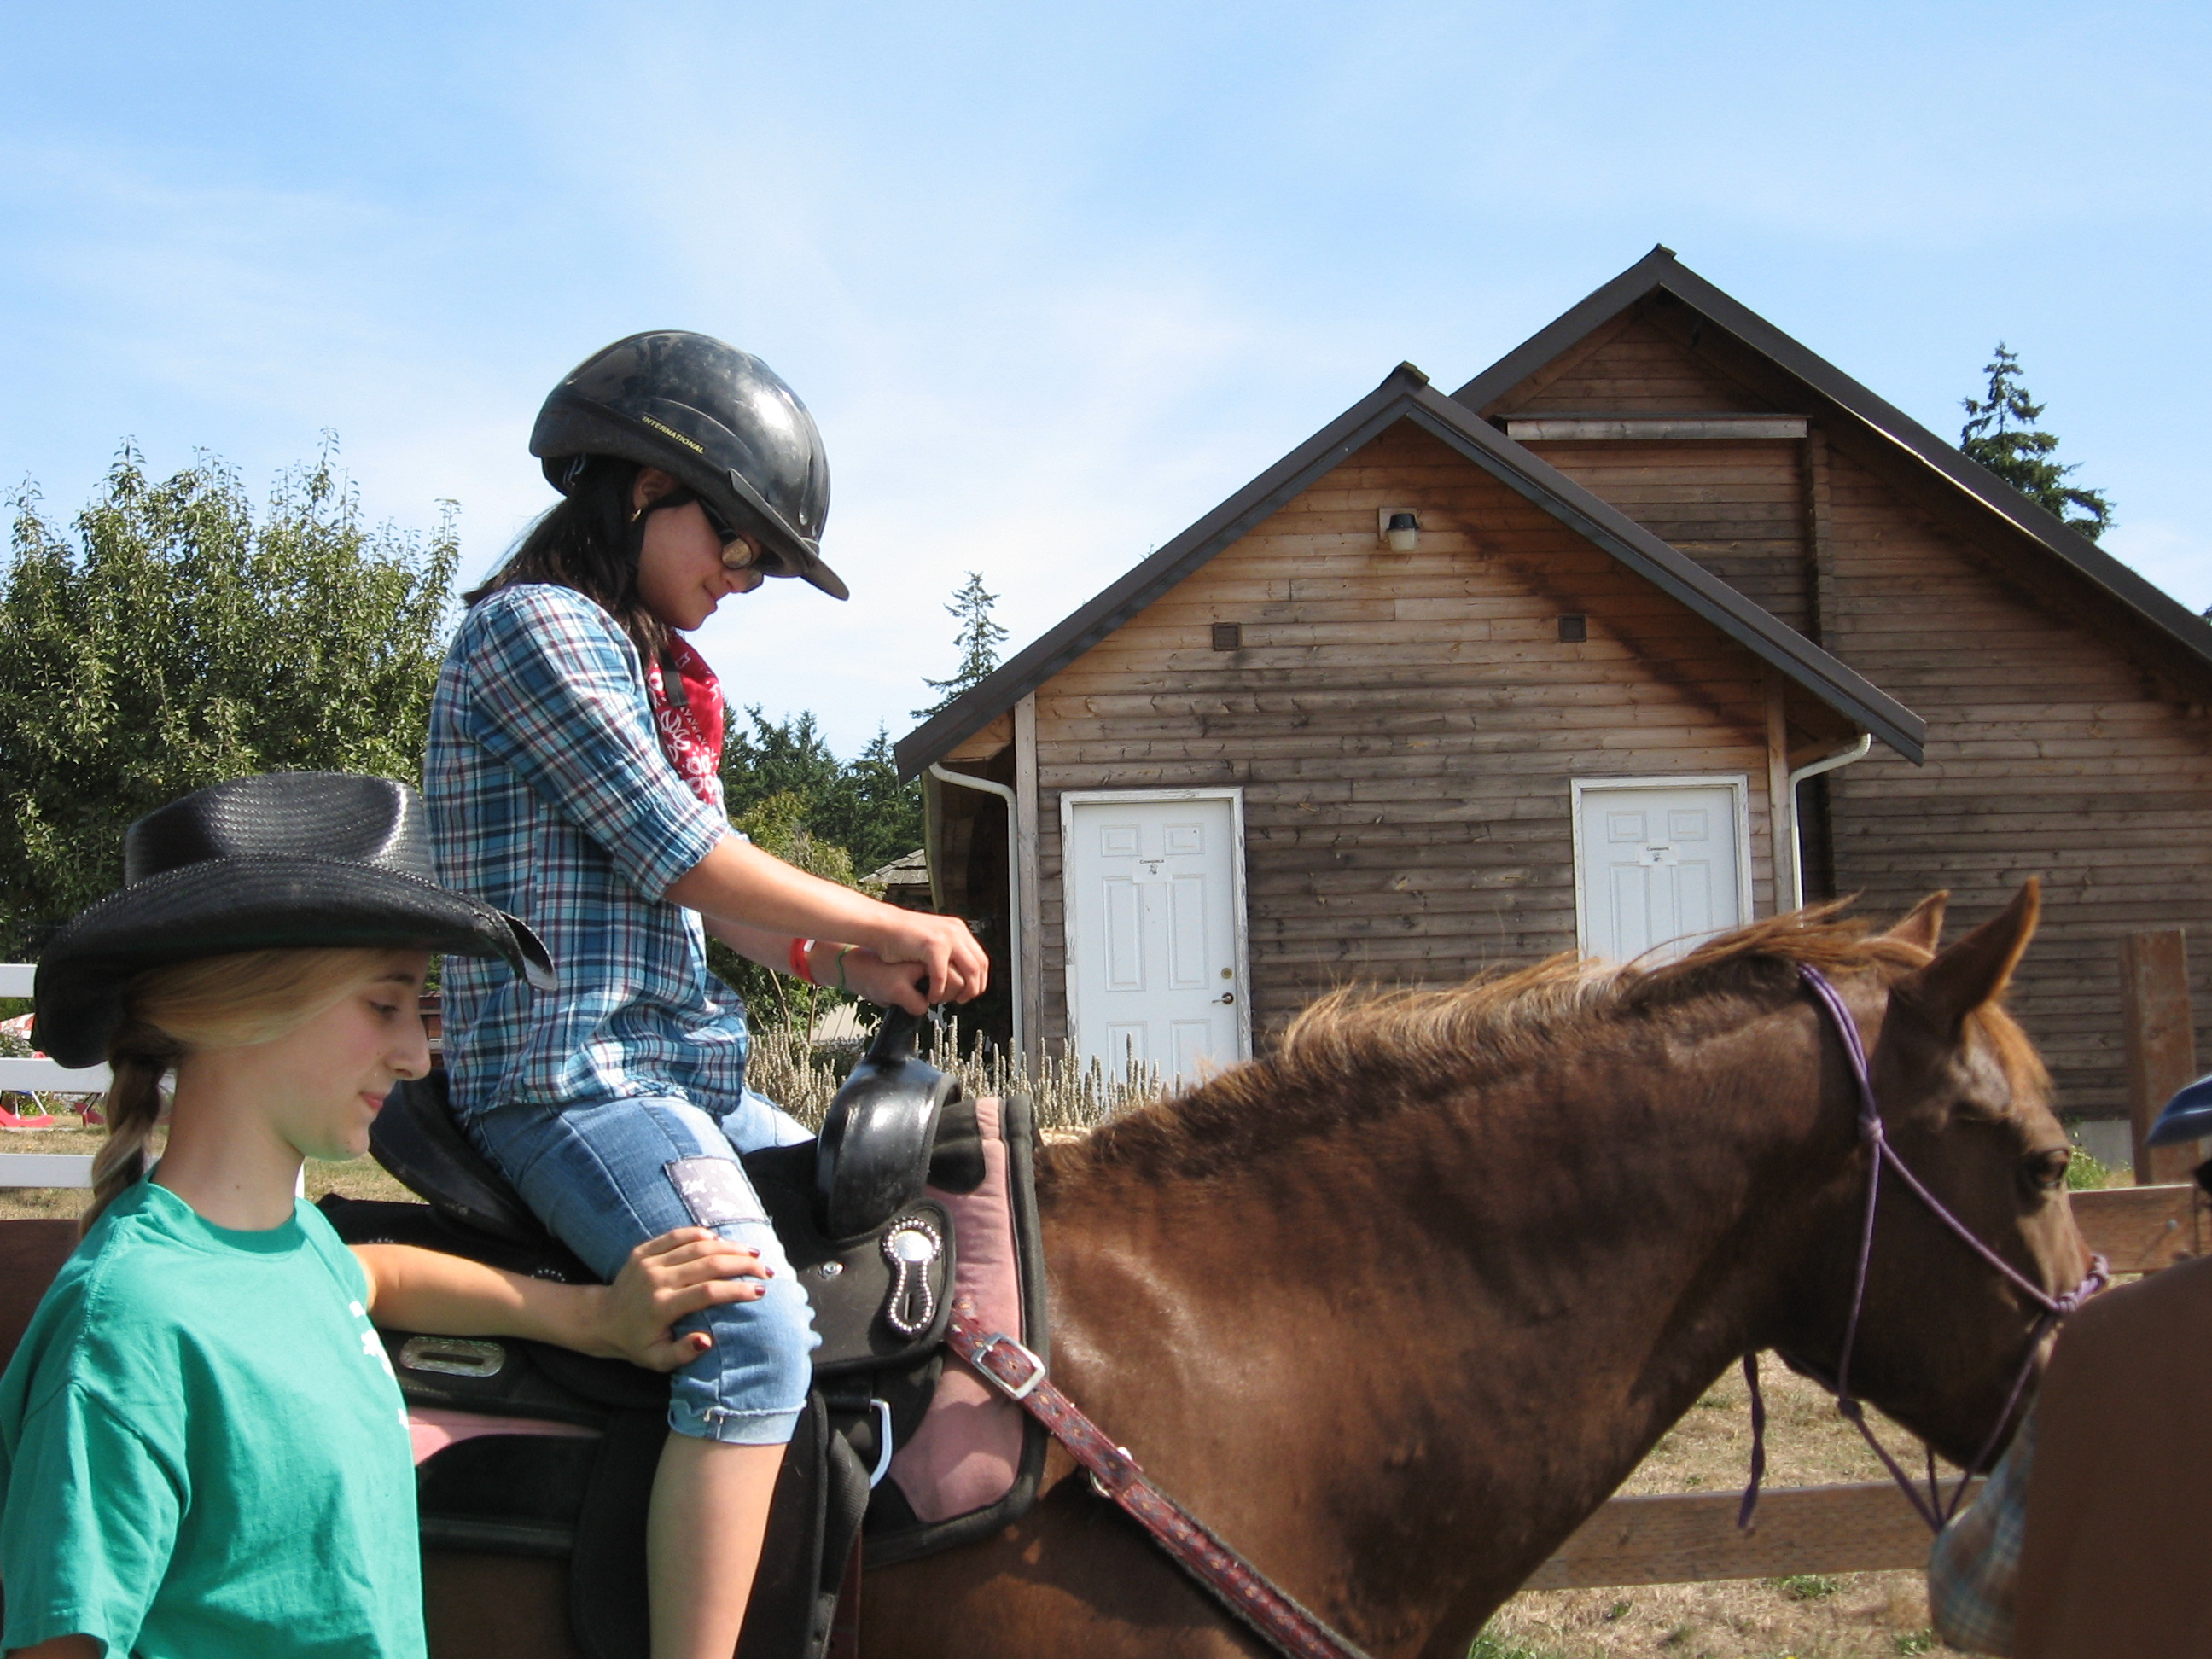 First Time on a Horse